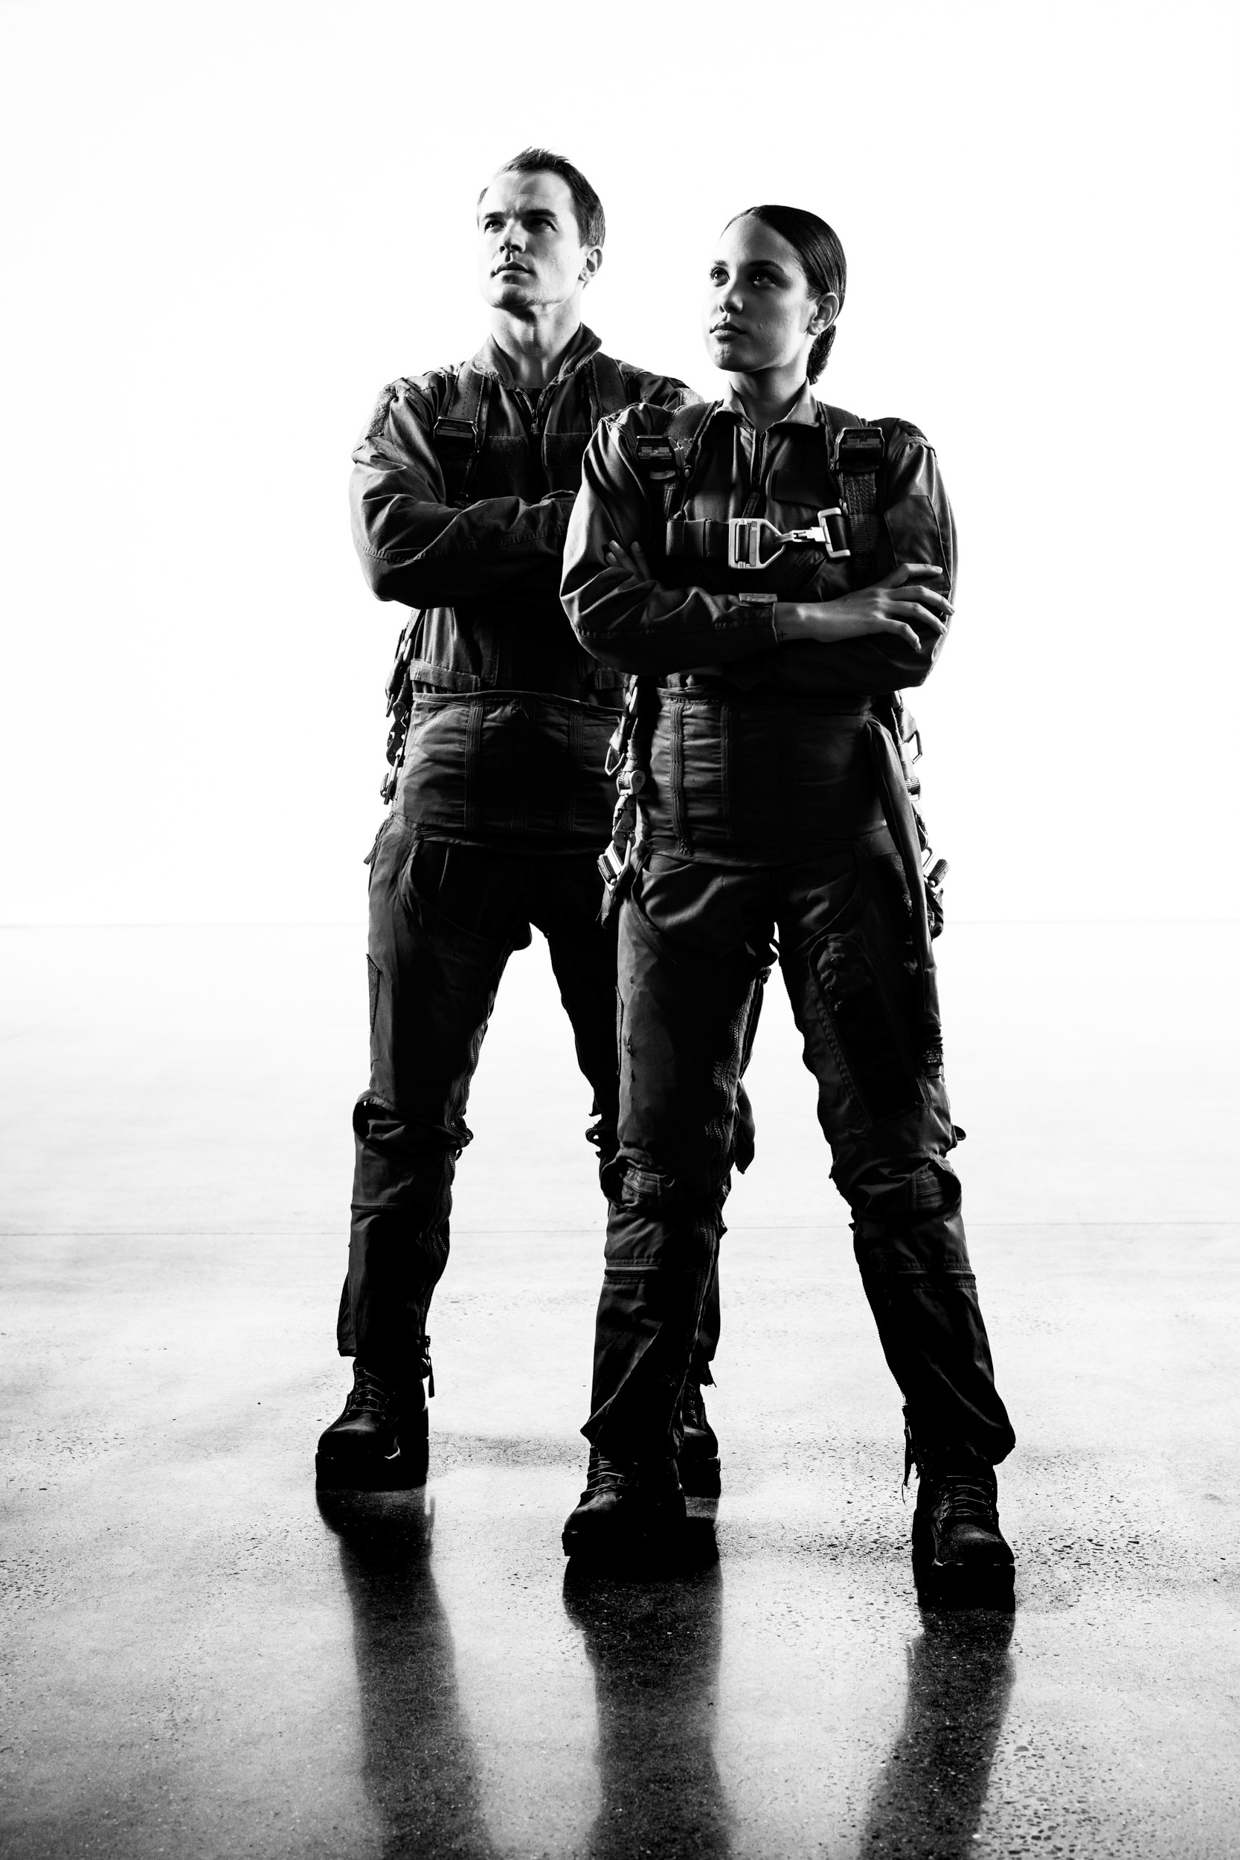 Hadasa Isolino and Chris Ryan pose for military portraits